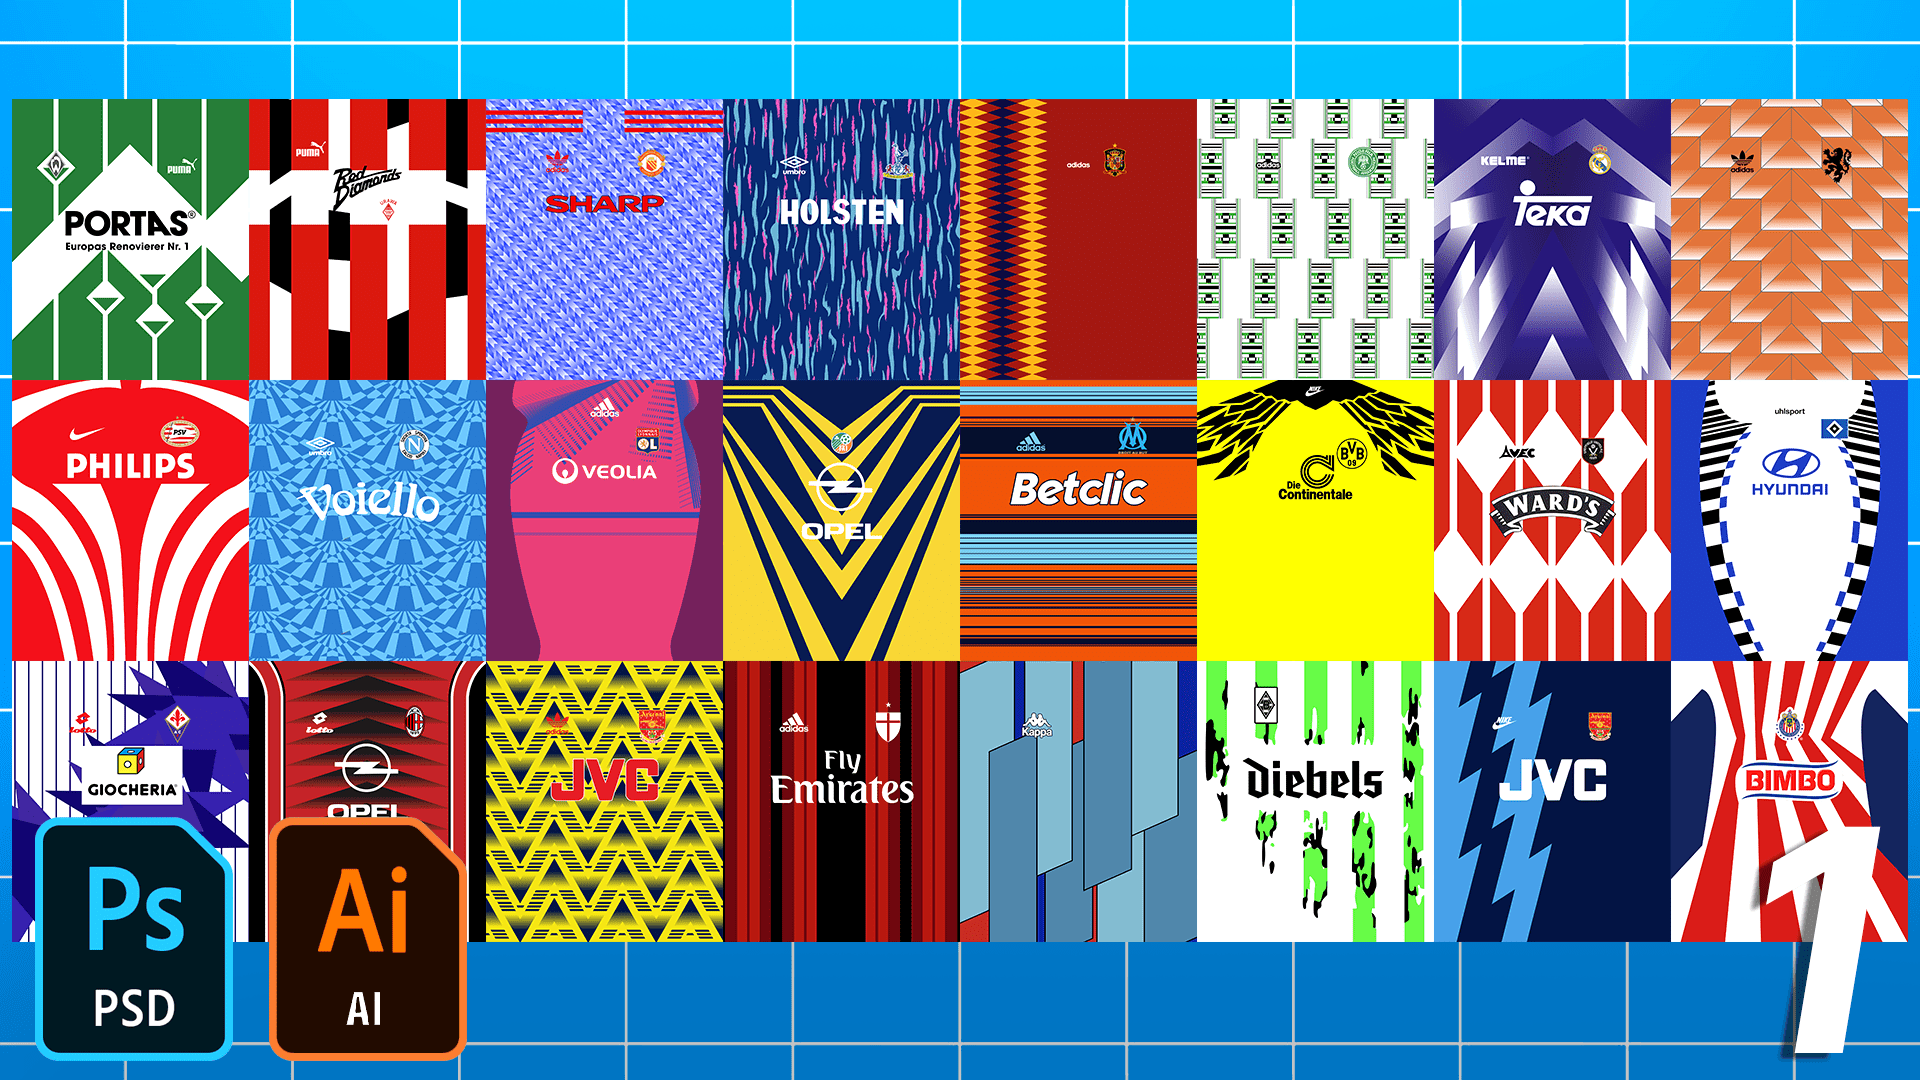 Football/Soccer Classic Jersey Patterns Pack – Part 1